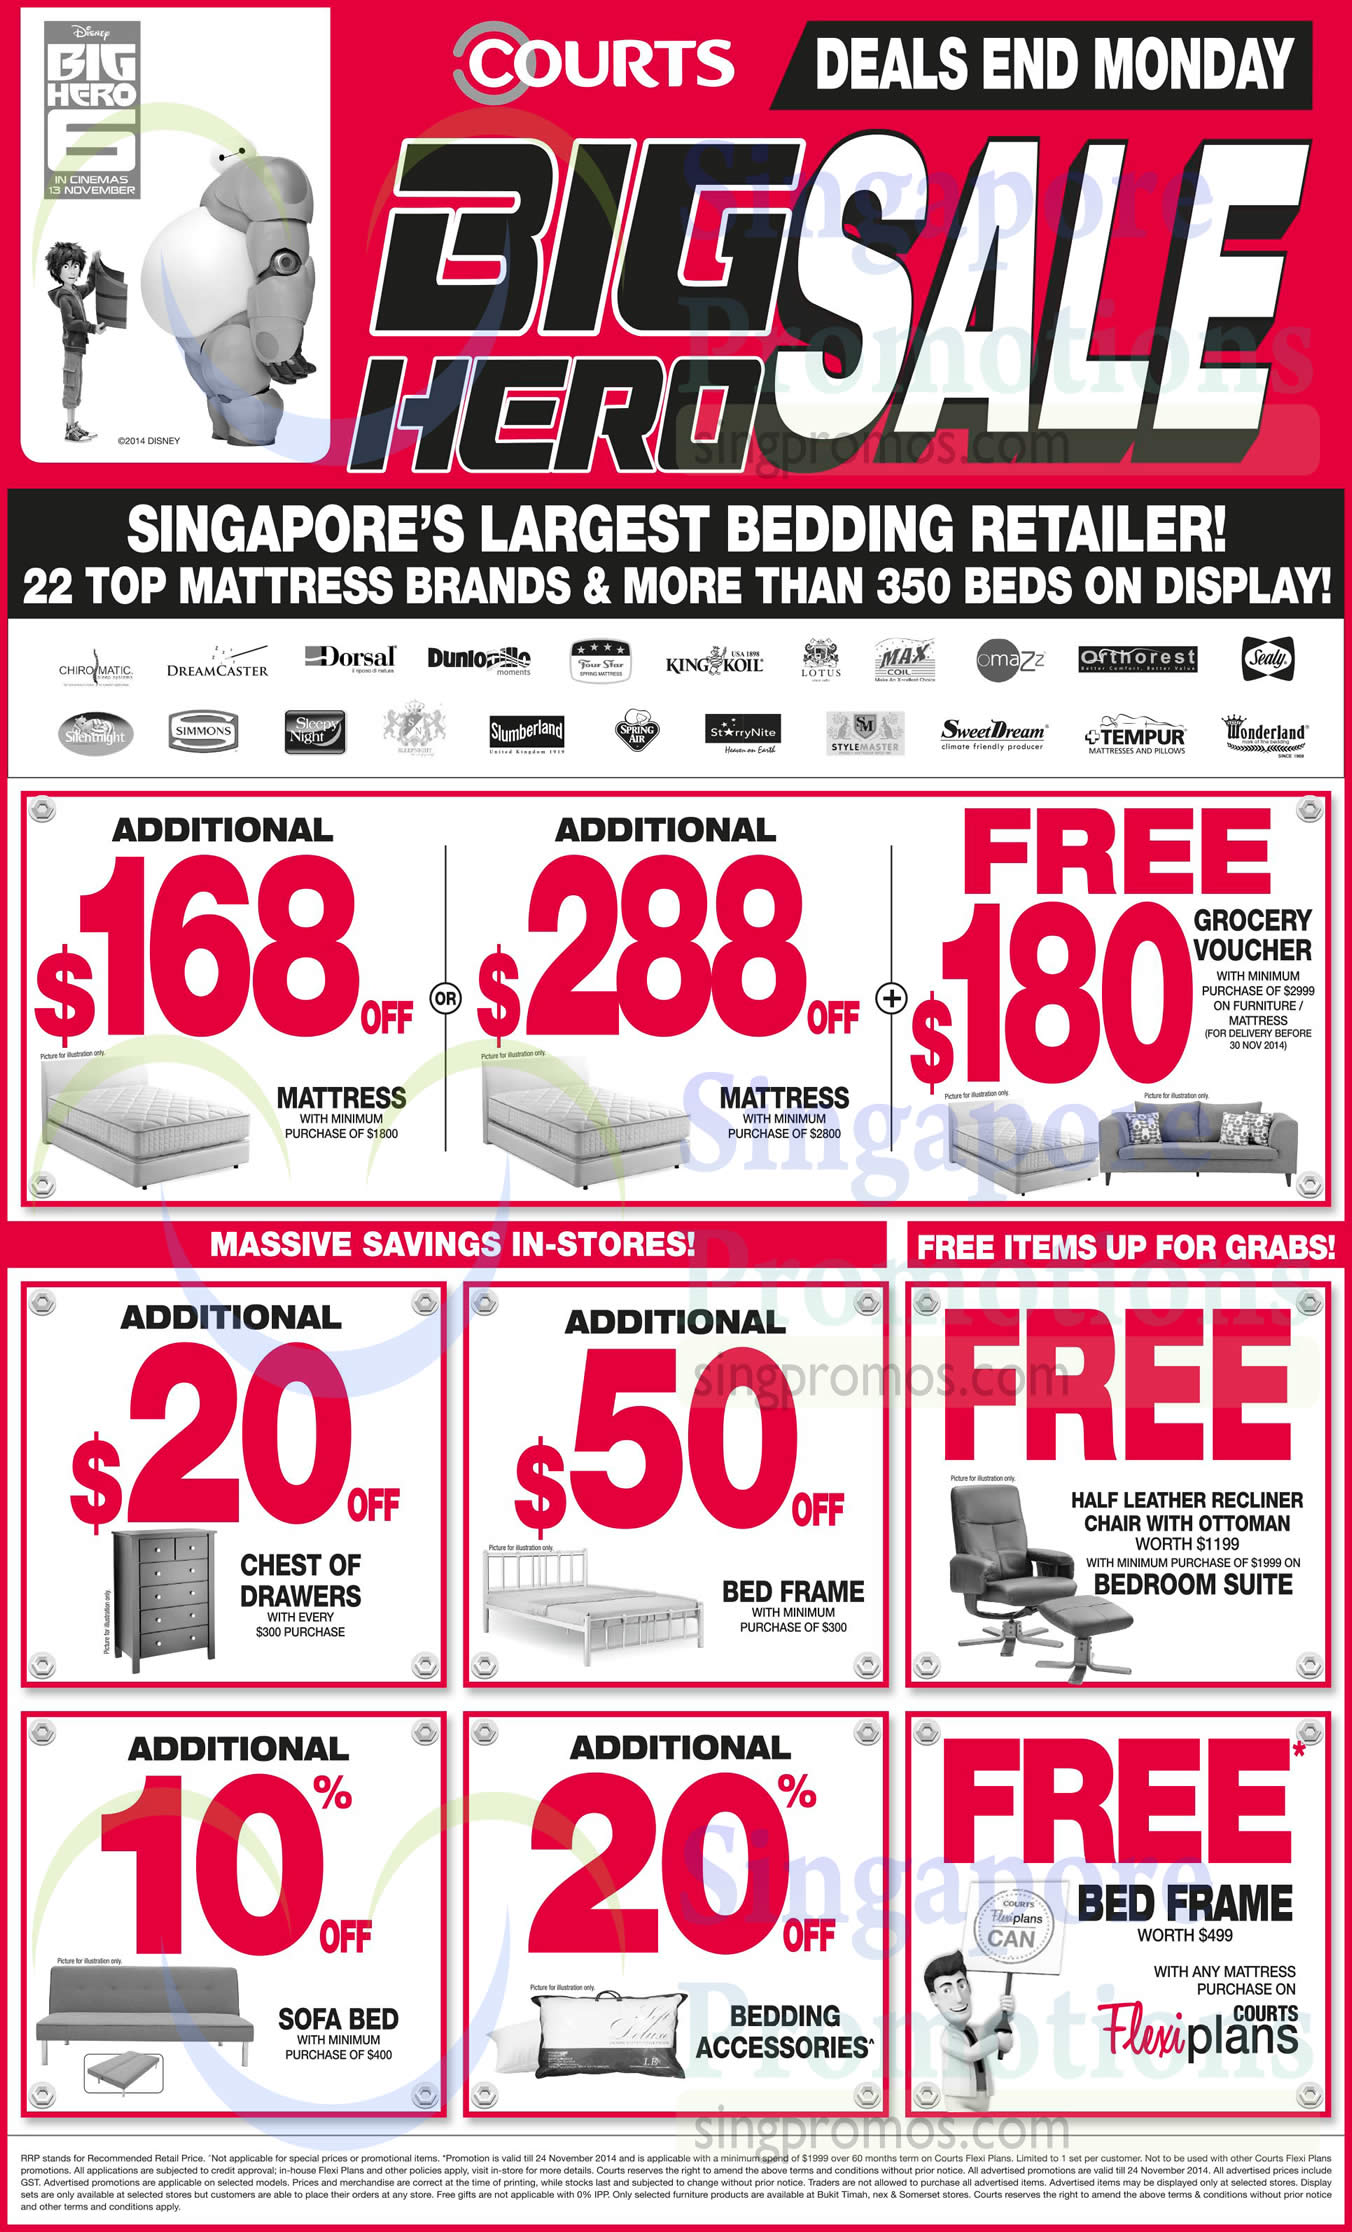 Mattresses, Bed Frames, Sofa Beds, Bedroom Suites, Dunlopillo, Fourstar, King Koil, Maxcoil, Sealy, Silentnight, Simmons, Spring Air, Stylemaster